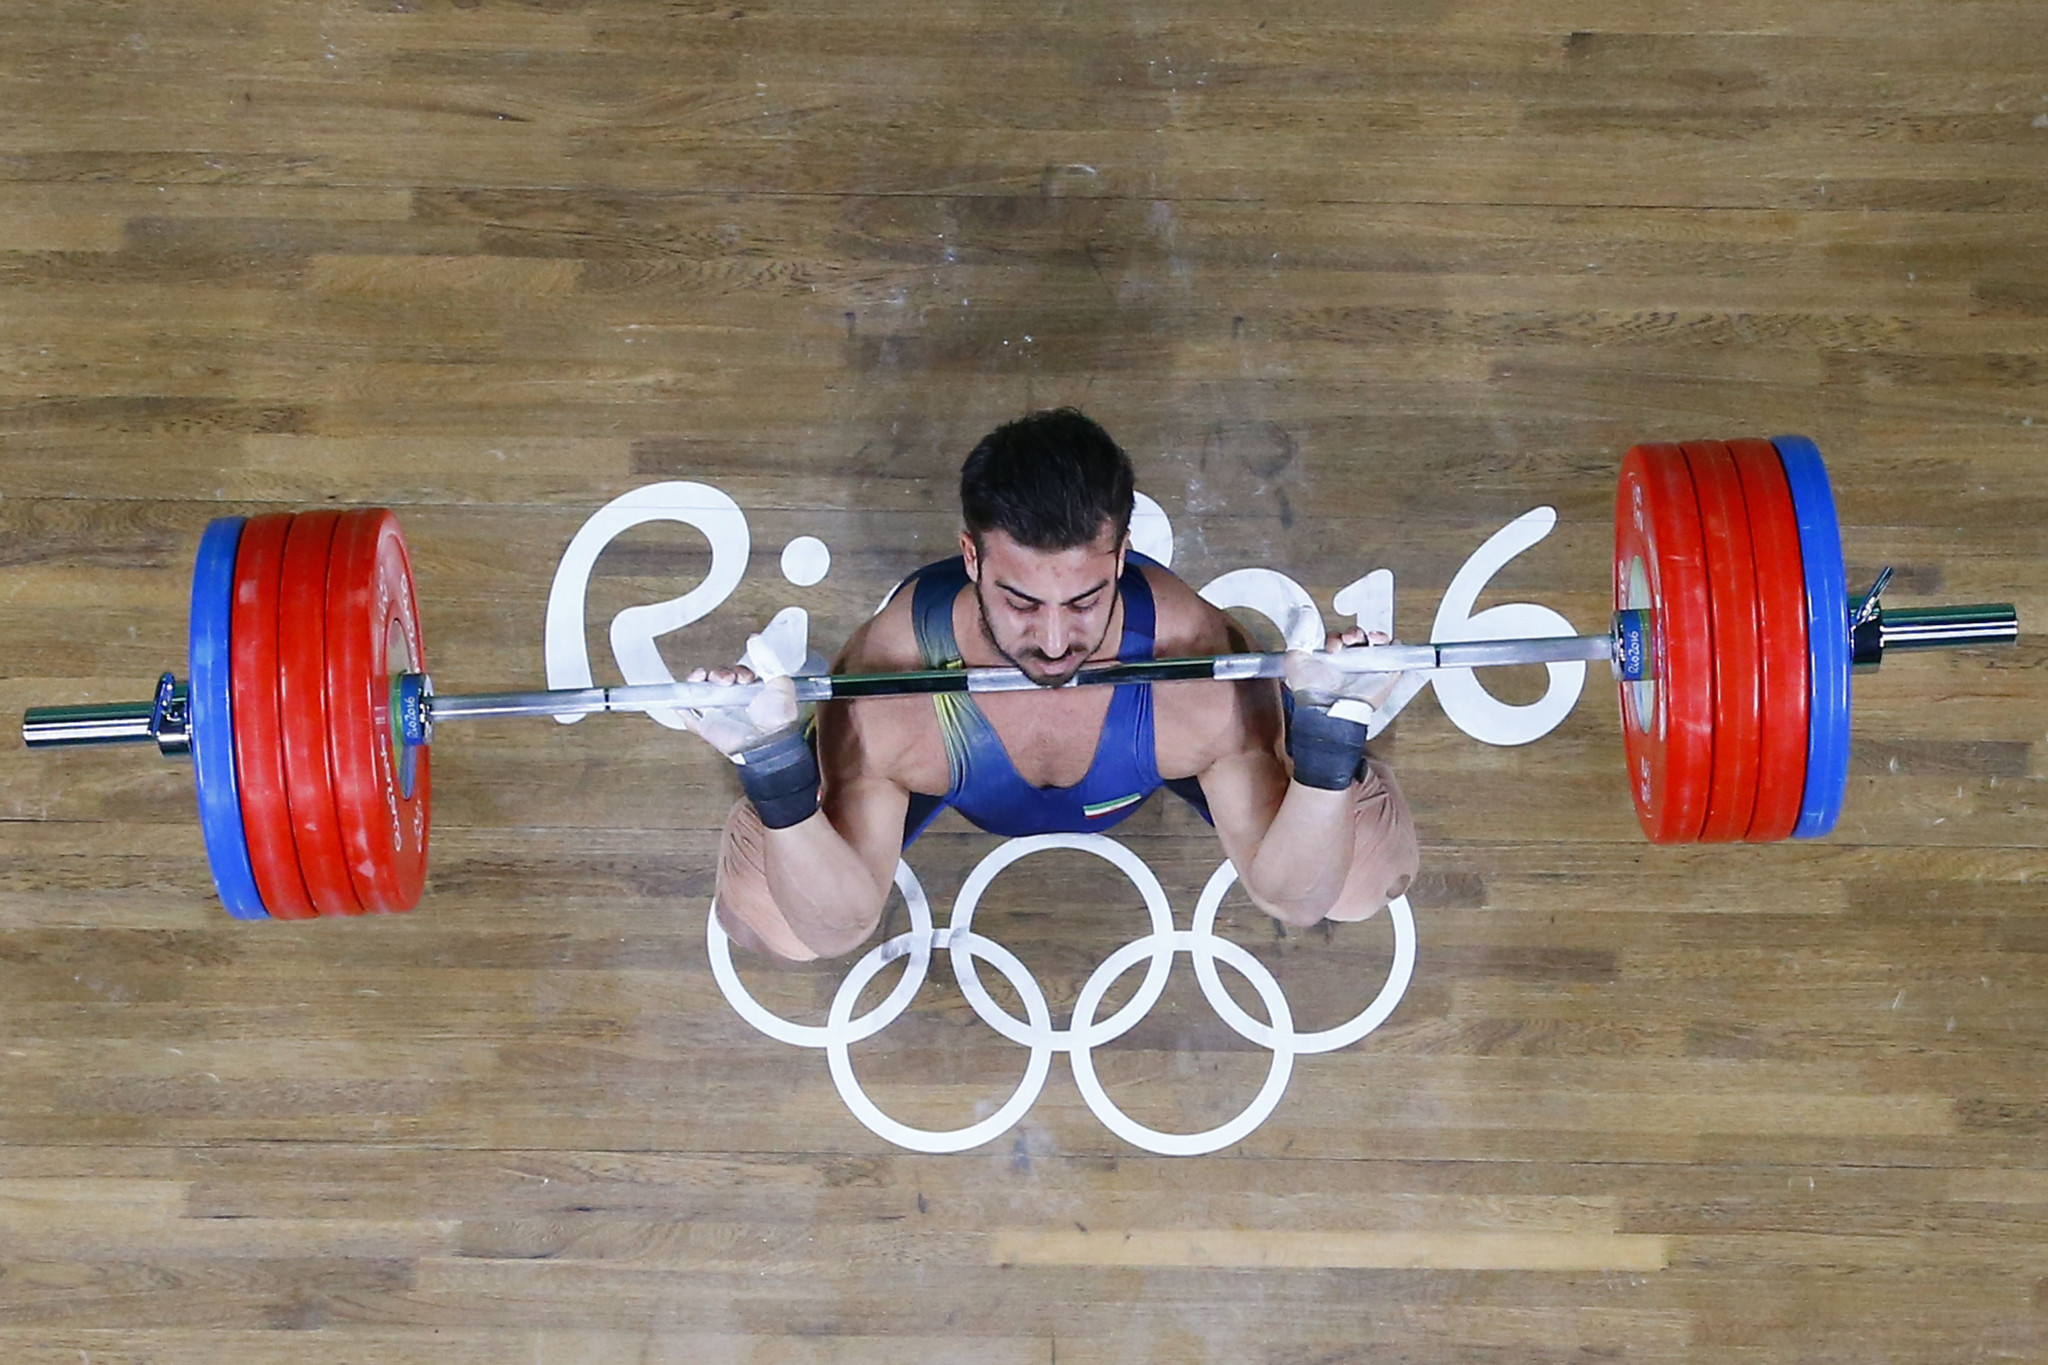 Kianoush Rostami, who is out of contention to reach Tokyo 2020, has dropped to a non-Olympic weight  ©Getty Images